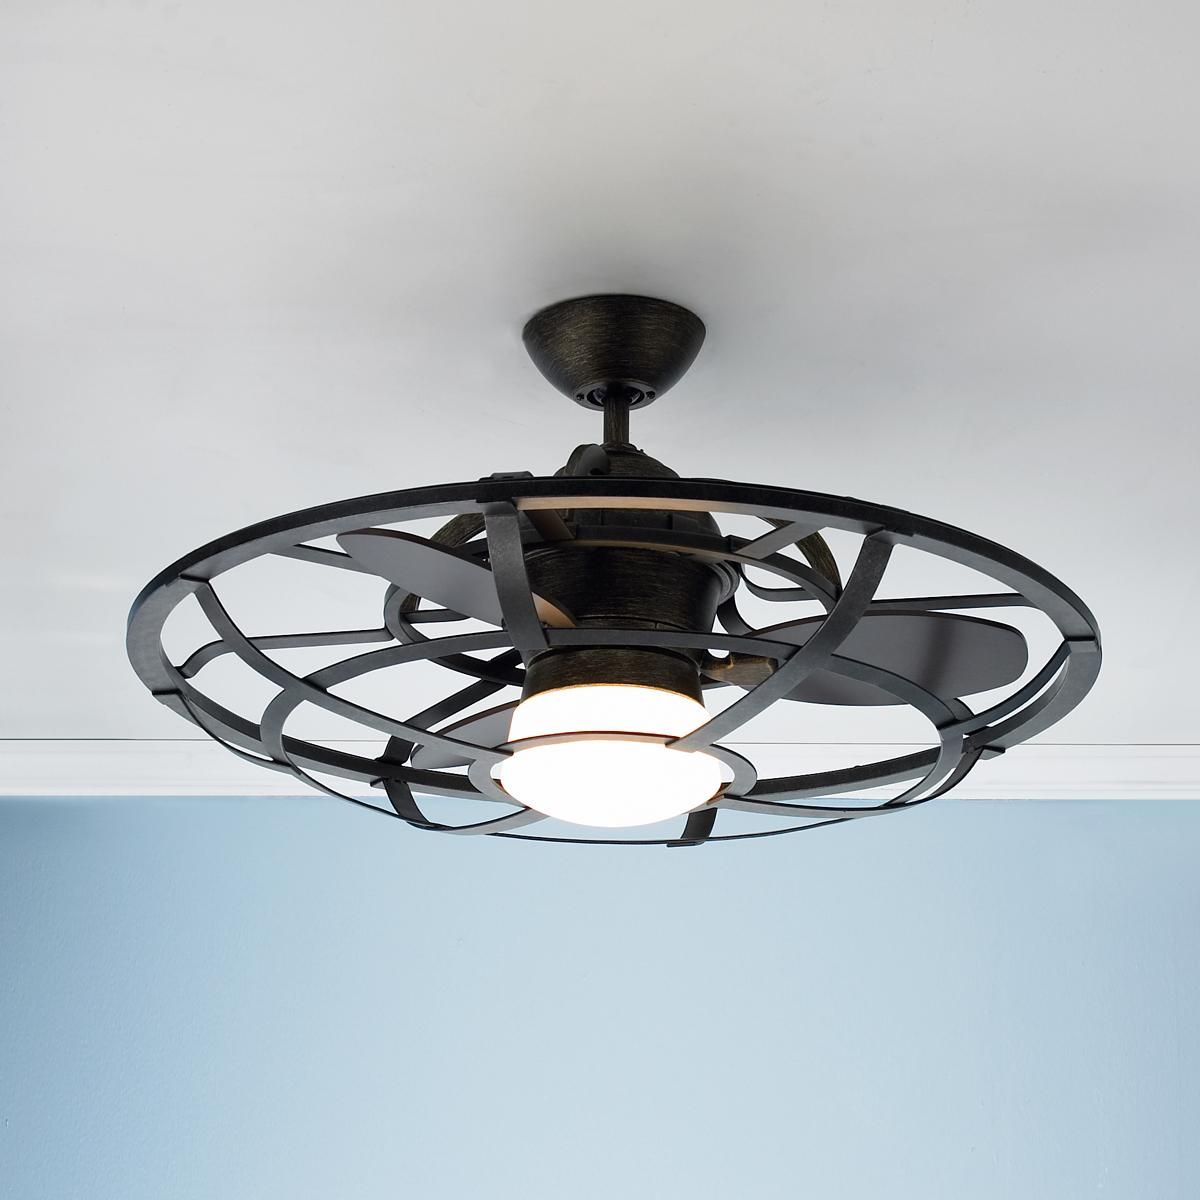 Industrial Cage Ceiling Fan Ceiling Fan Shades Ceiling Fan With Light Fan Light